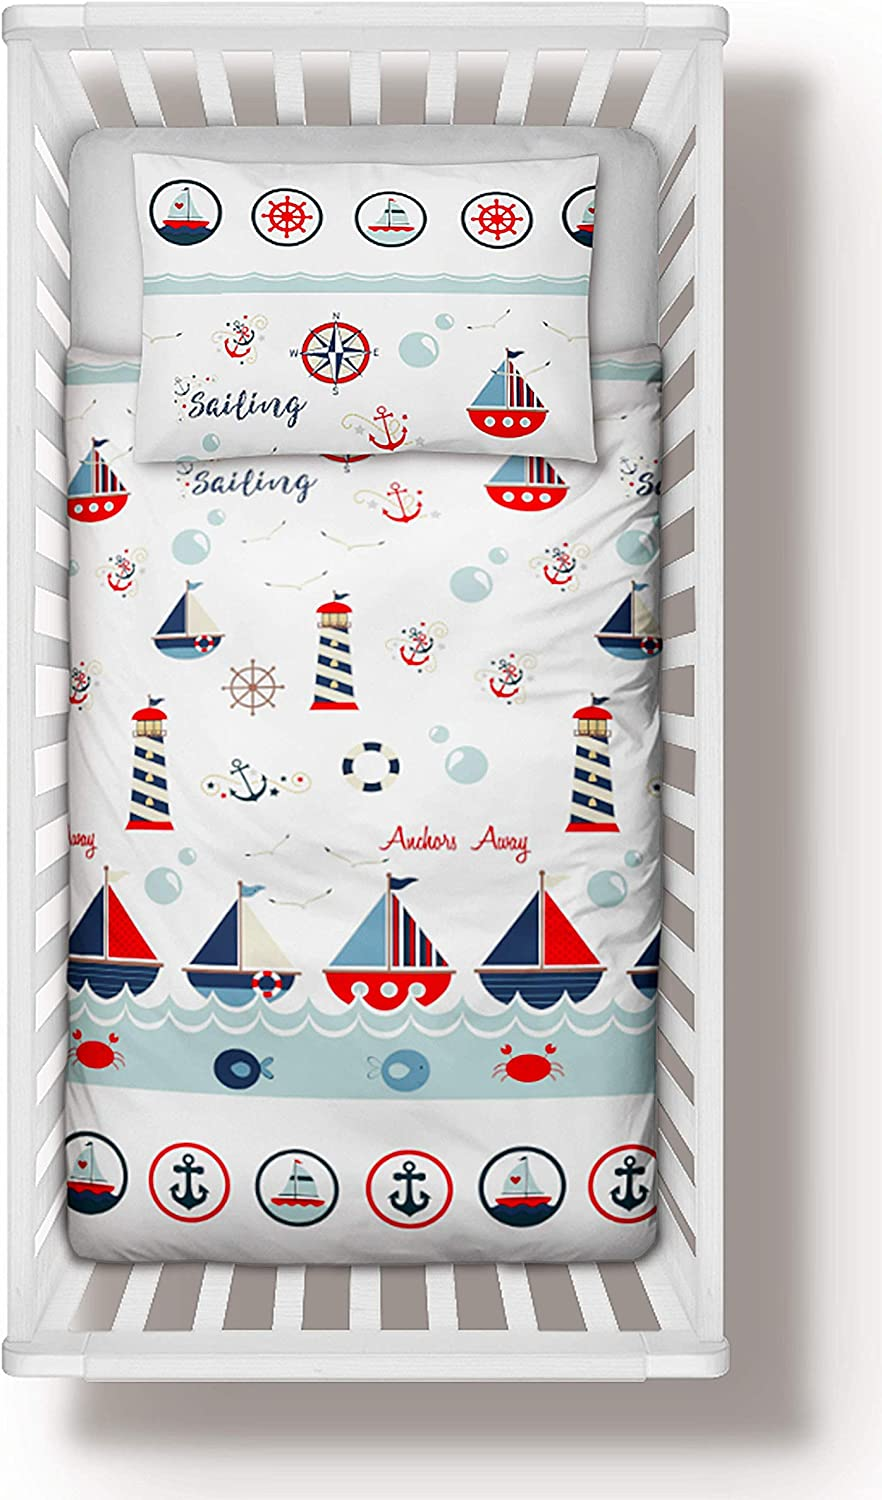 Sailing Boats Crib Bedding Set